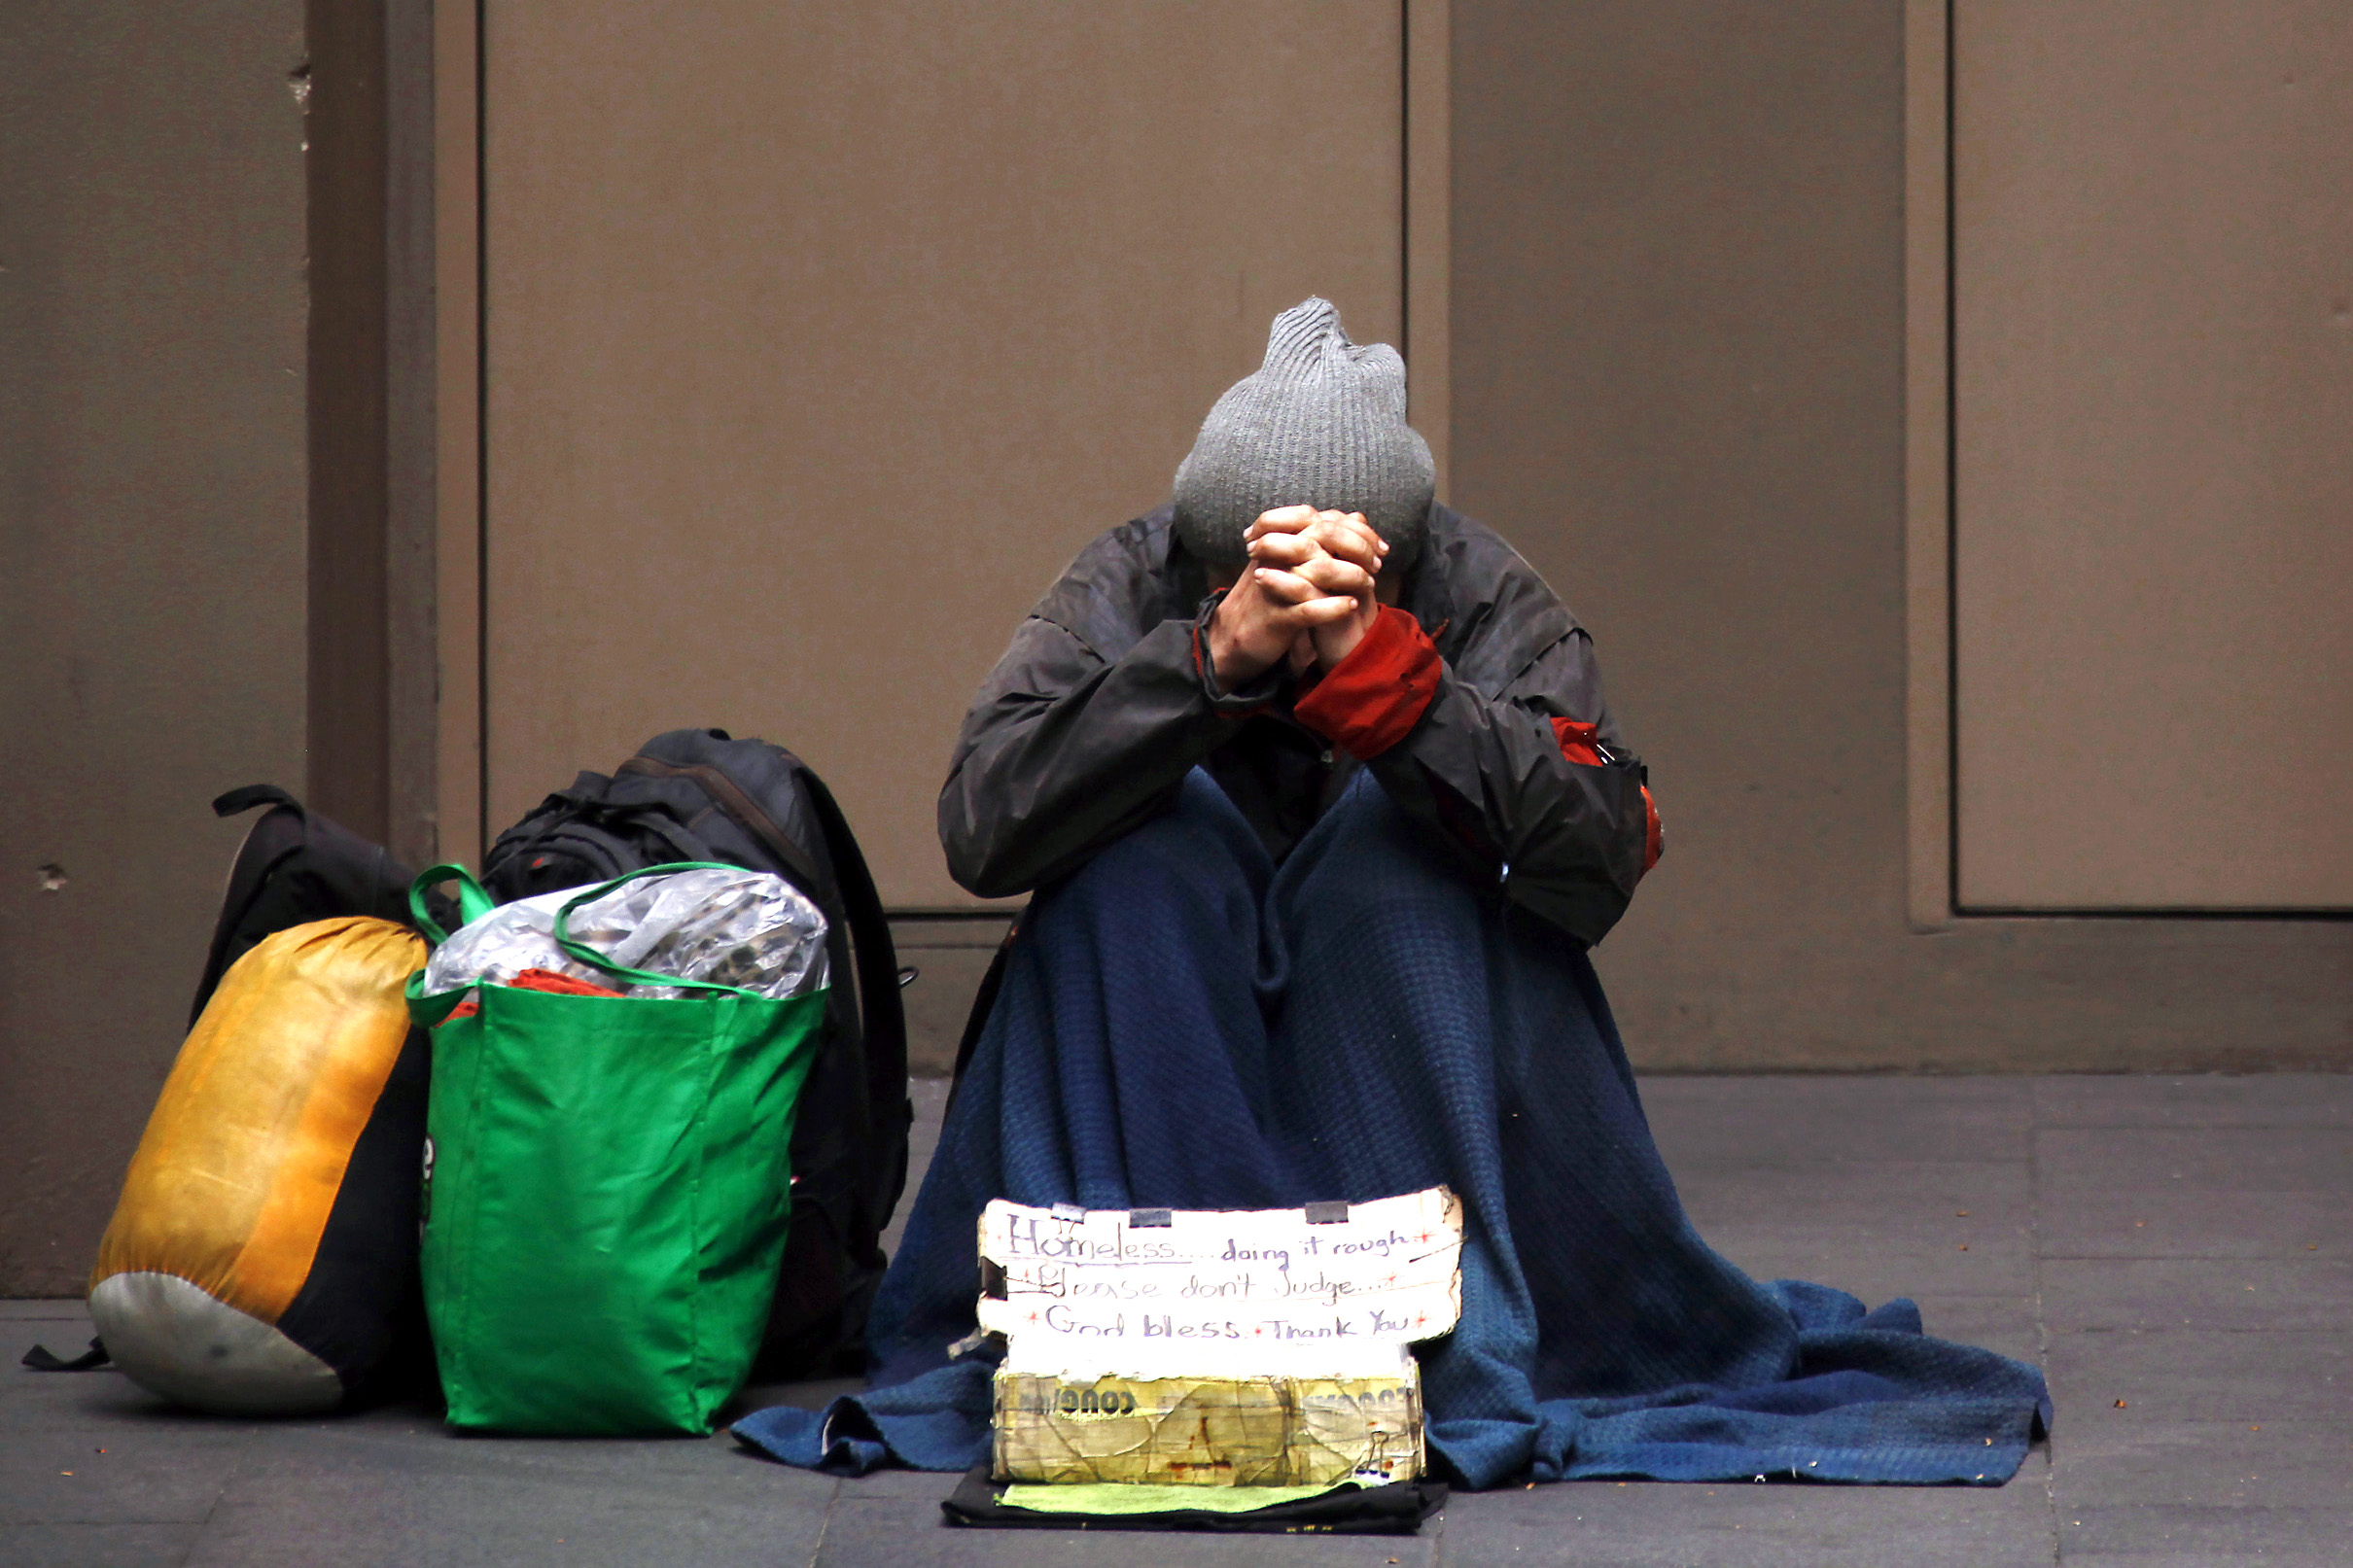 A homeless man begs for money on a street in Sydney in 2014. While Australia has one of the world's highest levels of average net wealth per person, nearly three million Australians, including more than 730,000 children, live in poverty. Photo: CNS/David Gray, Reuters.